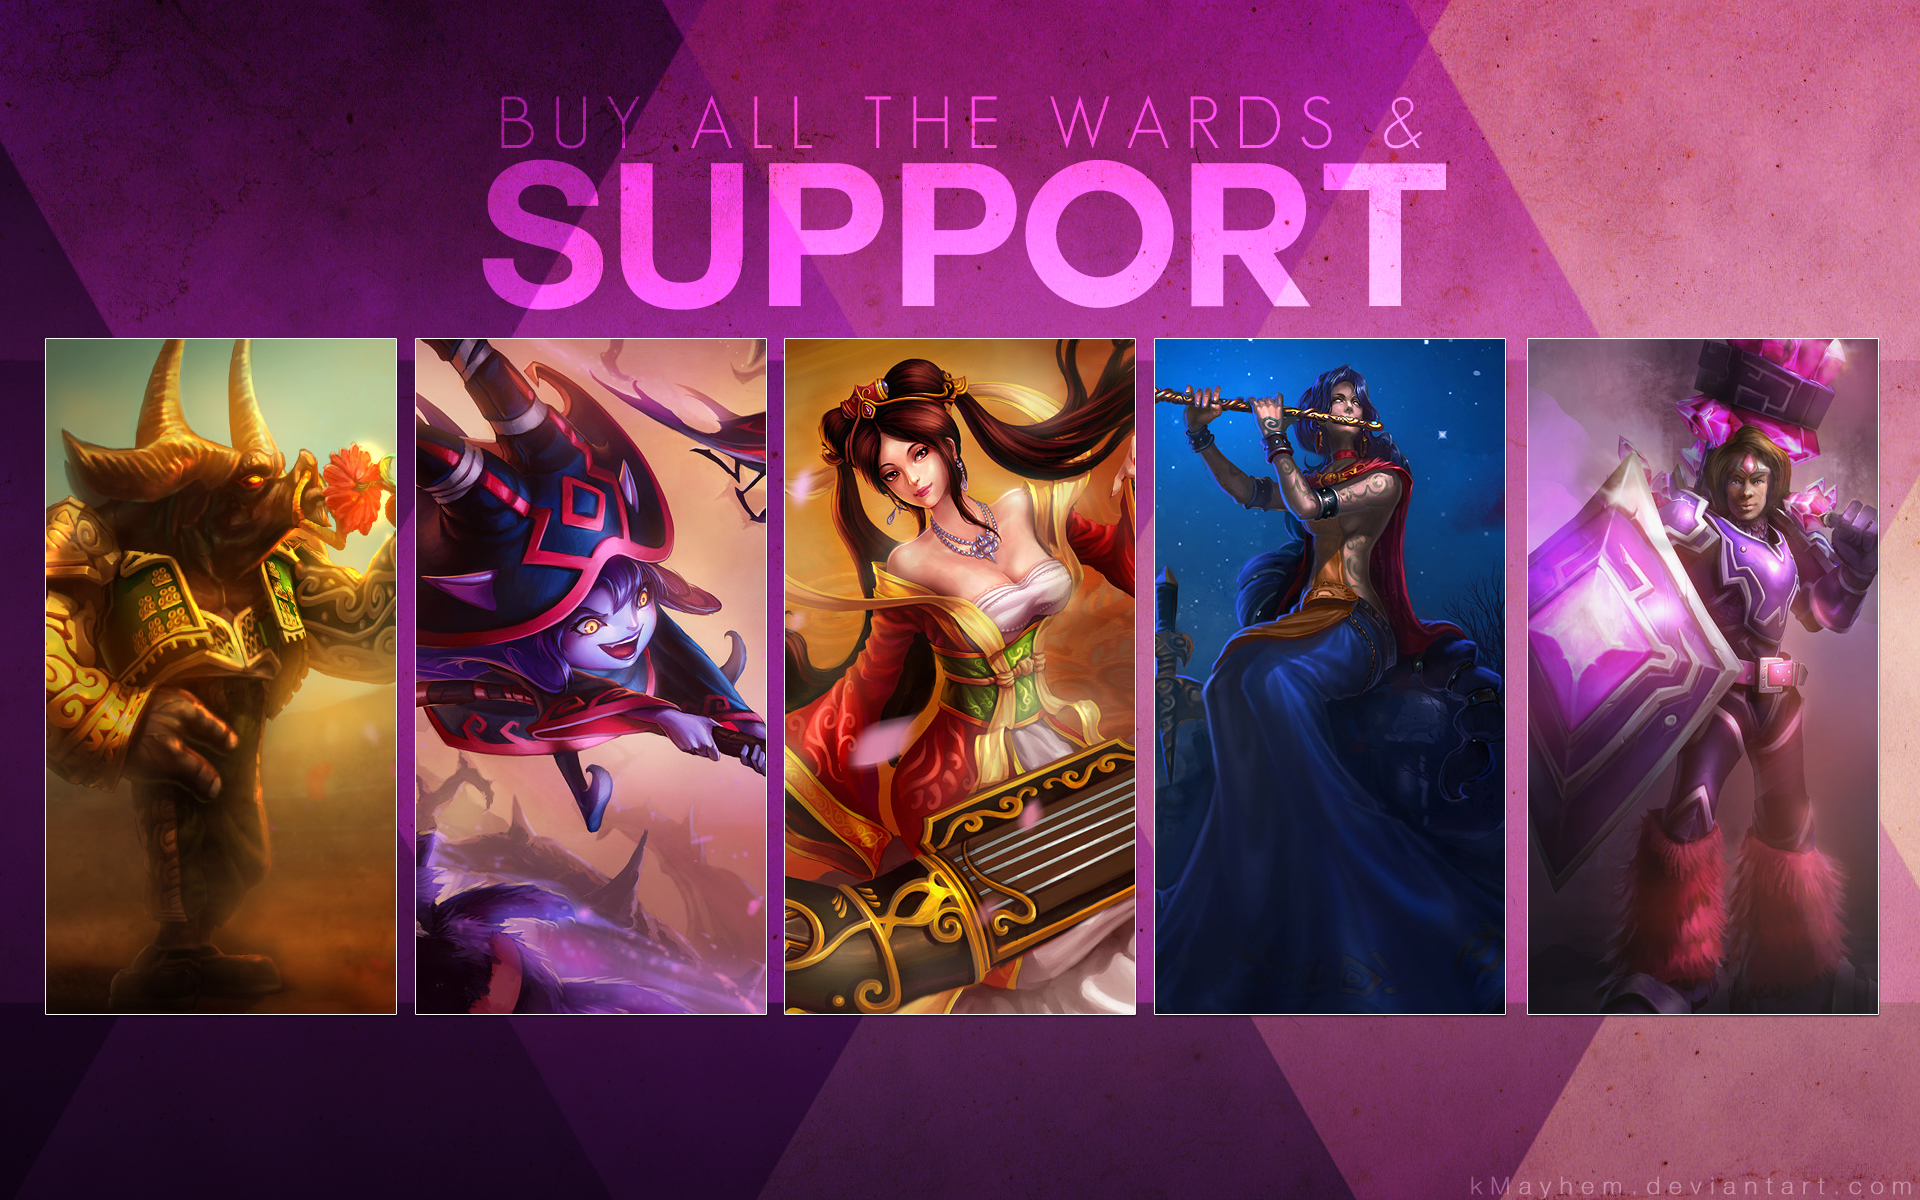 Buy All the Wards by kMayhem